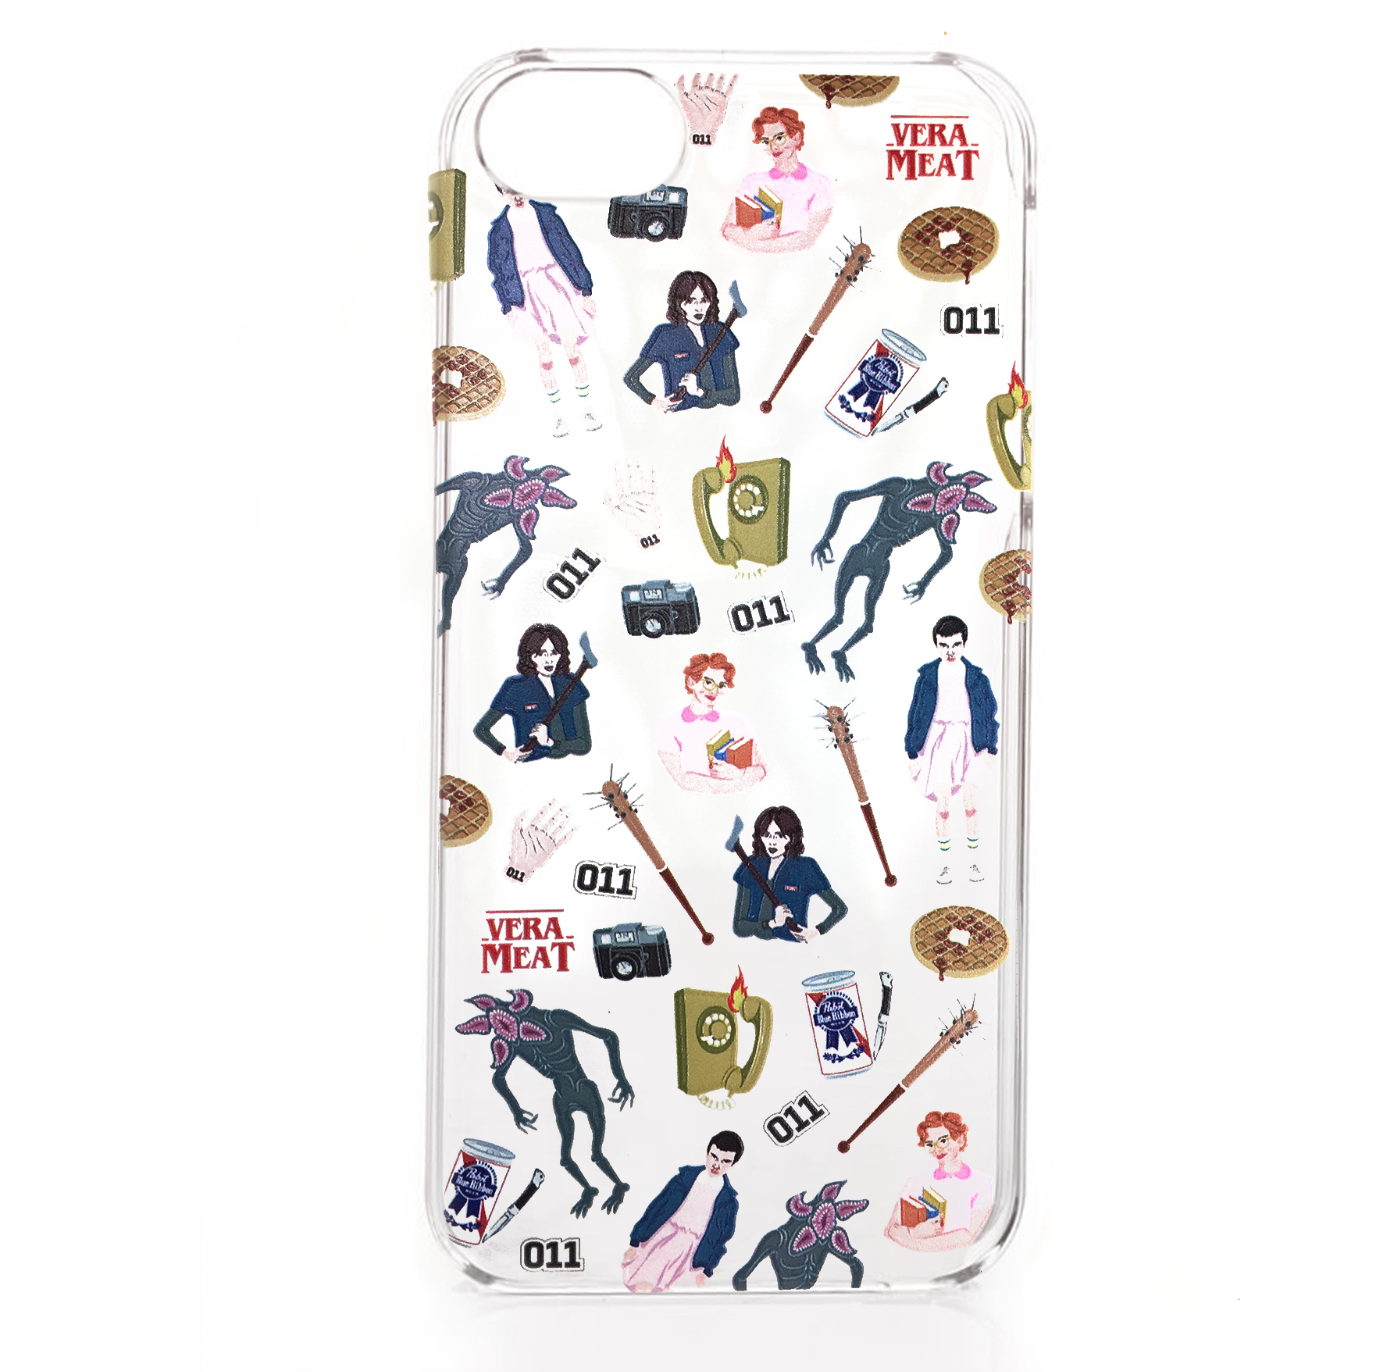 low priced 7e92d 394fc iPhone case Stranger Things Big — VERAMEAT